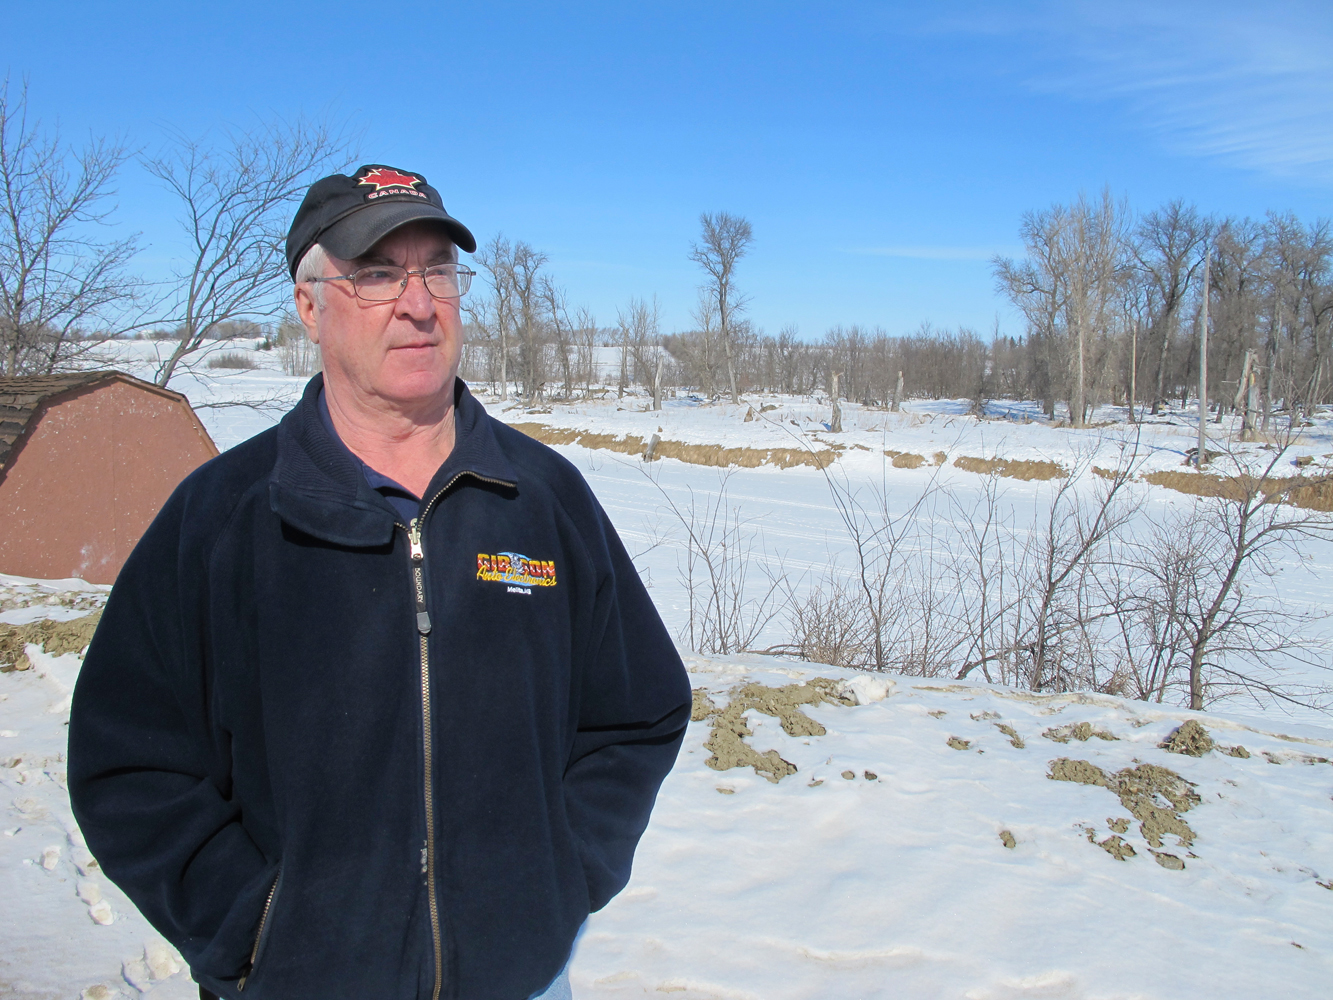 In early March, Melita Mayor Bob Walker stands on a dike raised by the province in 2009 at a cost of $500,000, with the Souris River in the background. He expects his town to be safe but said he's never seen the river this high at this time of year.  (Bartley Kives / Winnipeg Free Press)